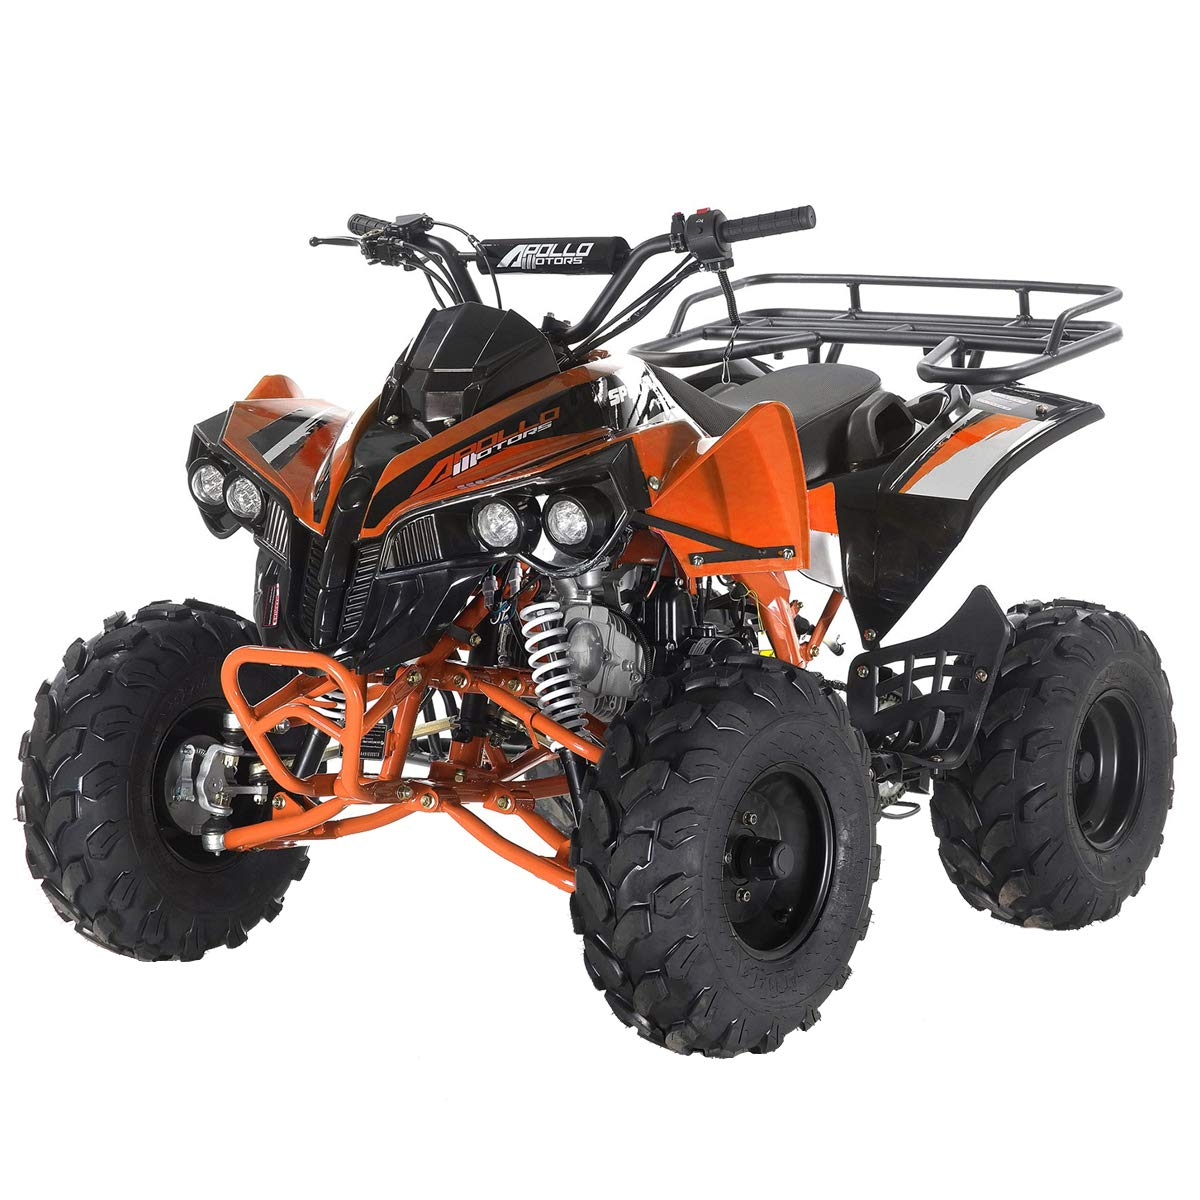 X-Pro 125cc ATV Quad Youth 4 Wheeler 125cc Adults ATVs Quads 4 Wheelers with Gloves Goggle and Handgrip